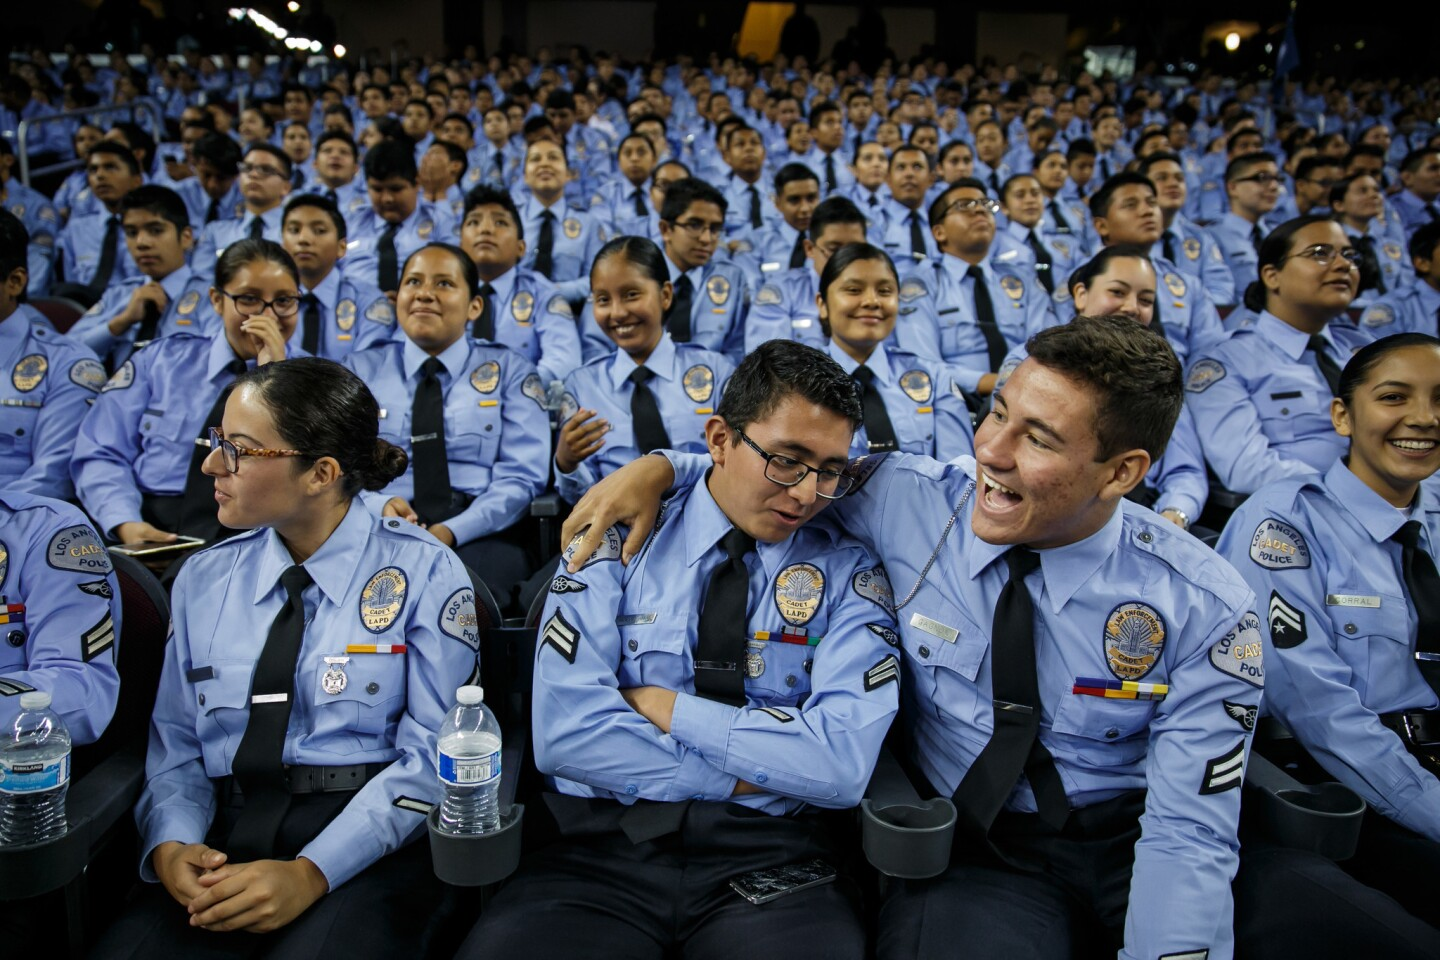 New LAPD cadets enjoy themselves at a graduation ceremony at USC's Galen Center on Saturday.